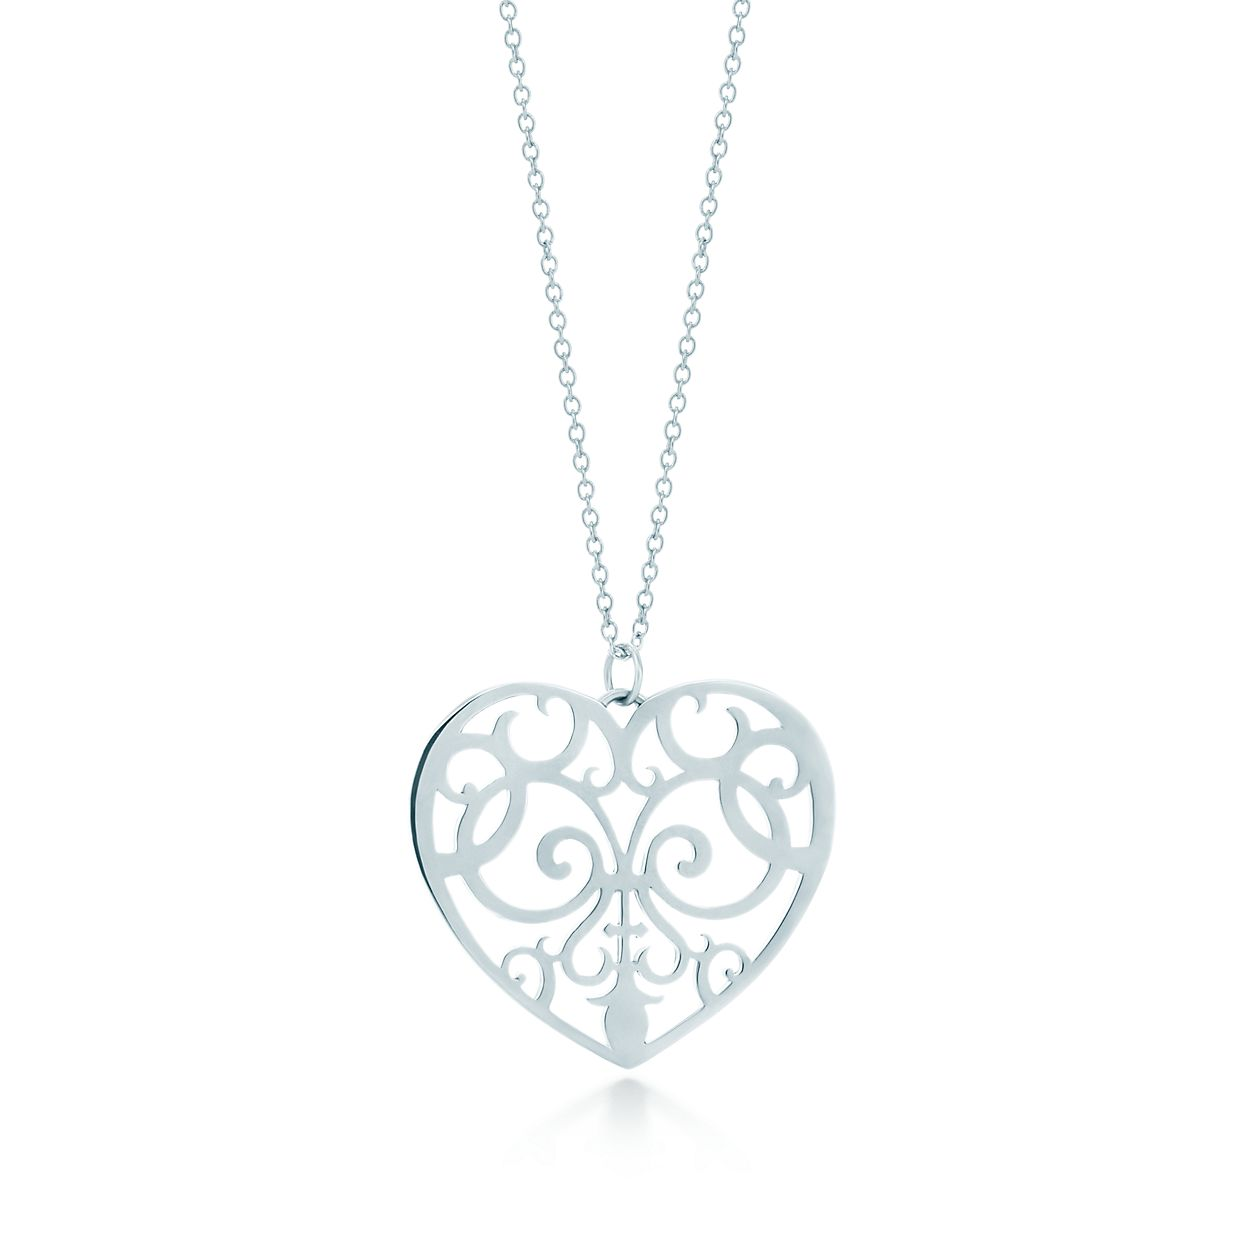 Tiffany enchant heart pendant in sterling silver large tiffany tiffany enchantheart pendant mozeypictures Gallery